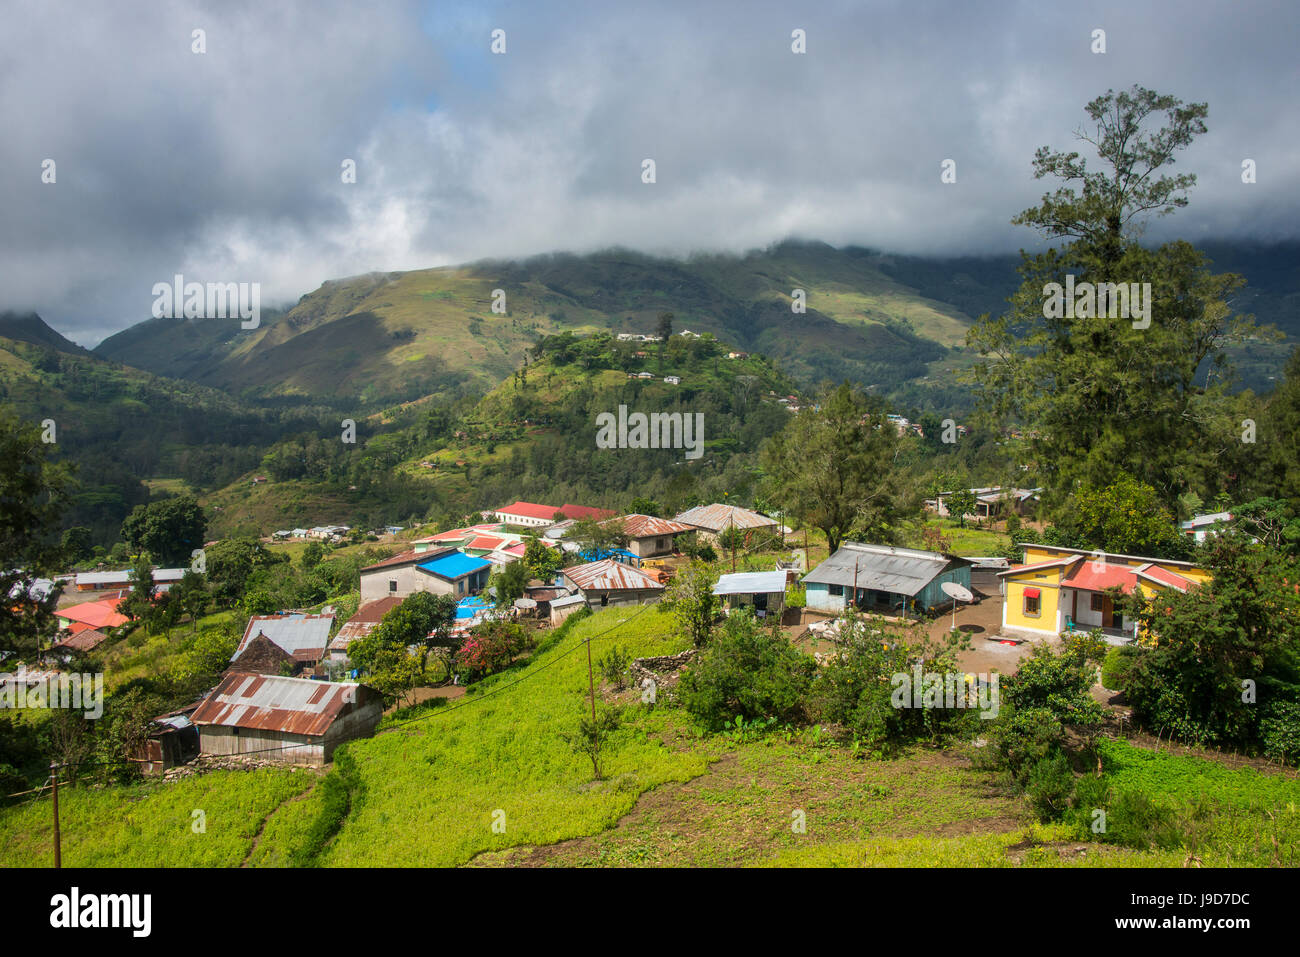 Overlook over the mountain town of Maubisse, East Timor, Southeast Asia, Asia - Stock Image